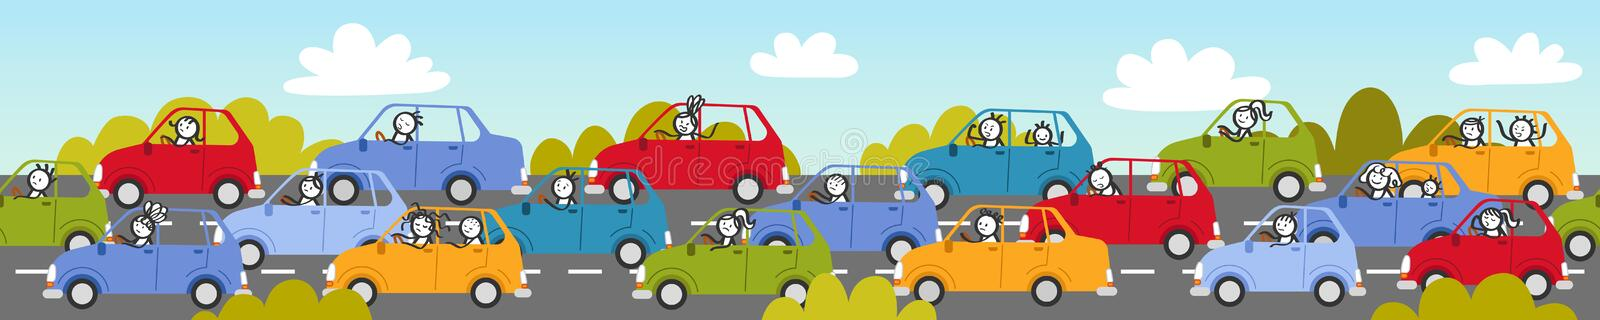 Traffic jam, rush hour, stick people in colorful cars, cartoon street and bushes. Traffic jam, rush hour, stick people in colorful cars, cartoon street, bushes vector illustration